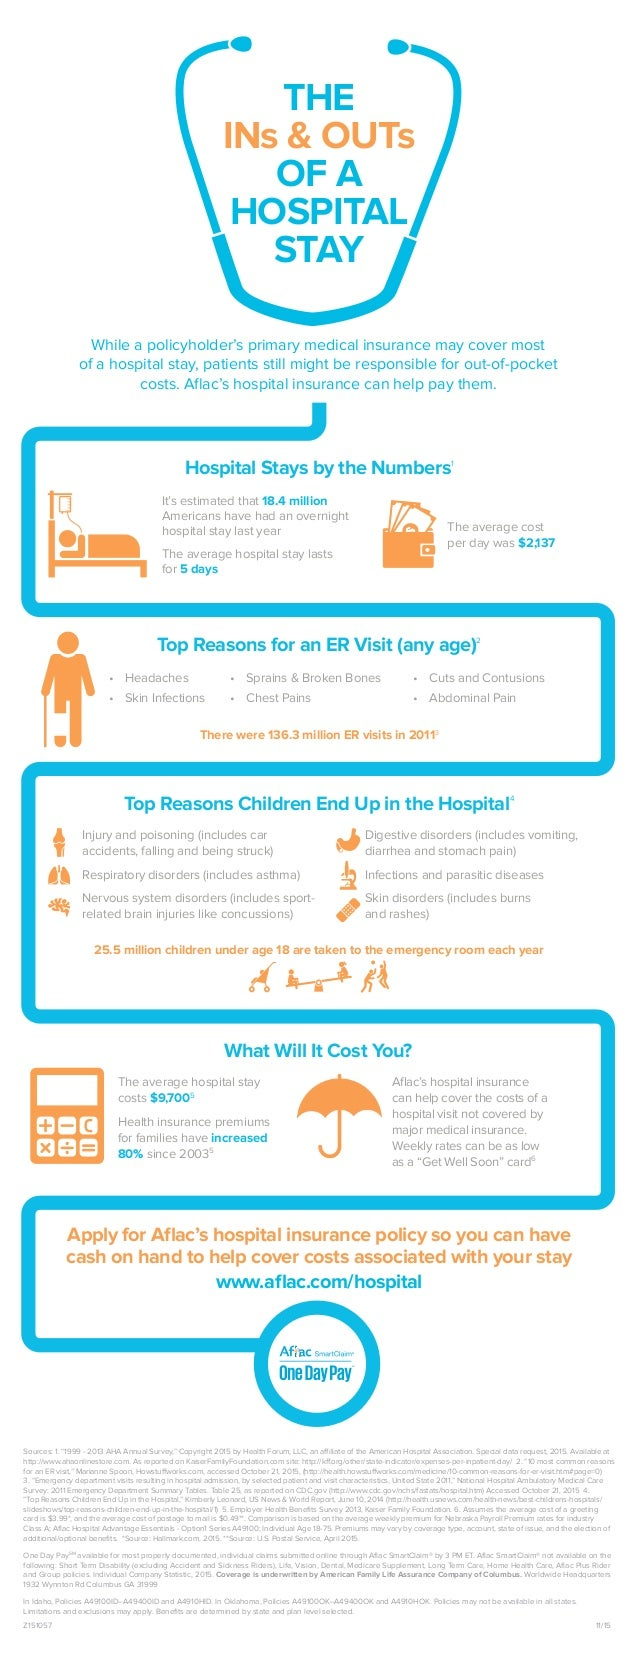 THE INs & OUTs OF A HOSPITAL STAY While a policyholder's primary medical insurance may cover most of a hospital stay, pati...